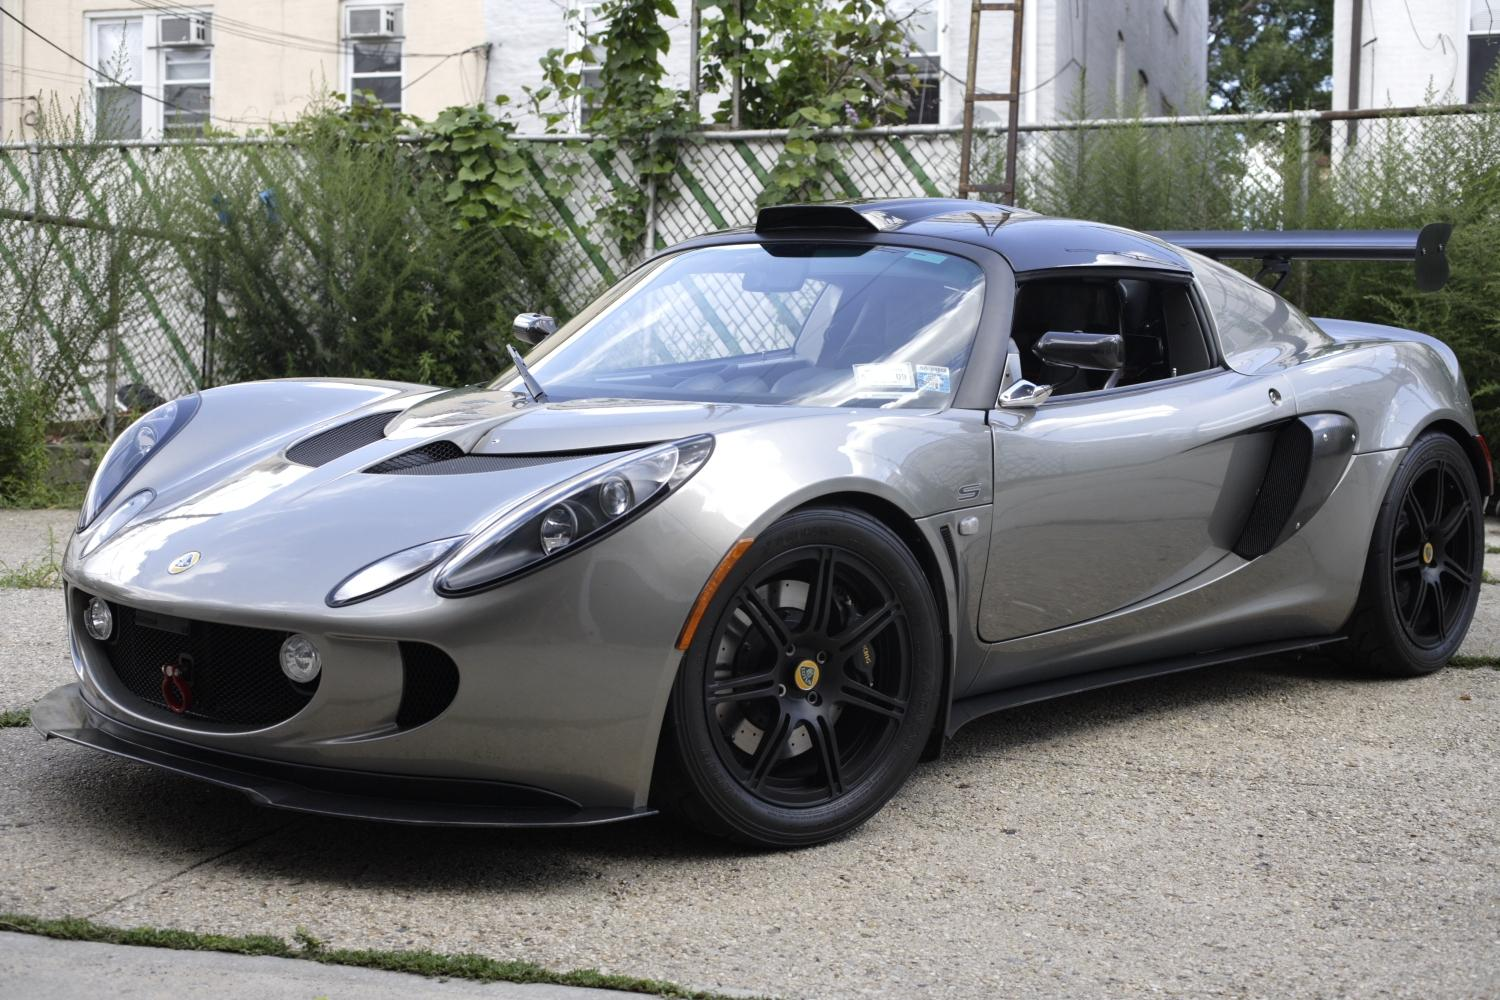 https://www.scda1.com/wp-content/uploads/2014/12/colin_07lotus_exige_s.jpg